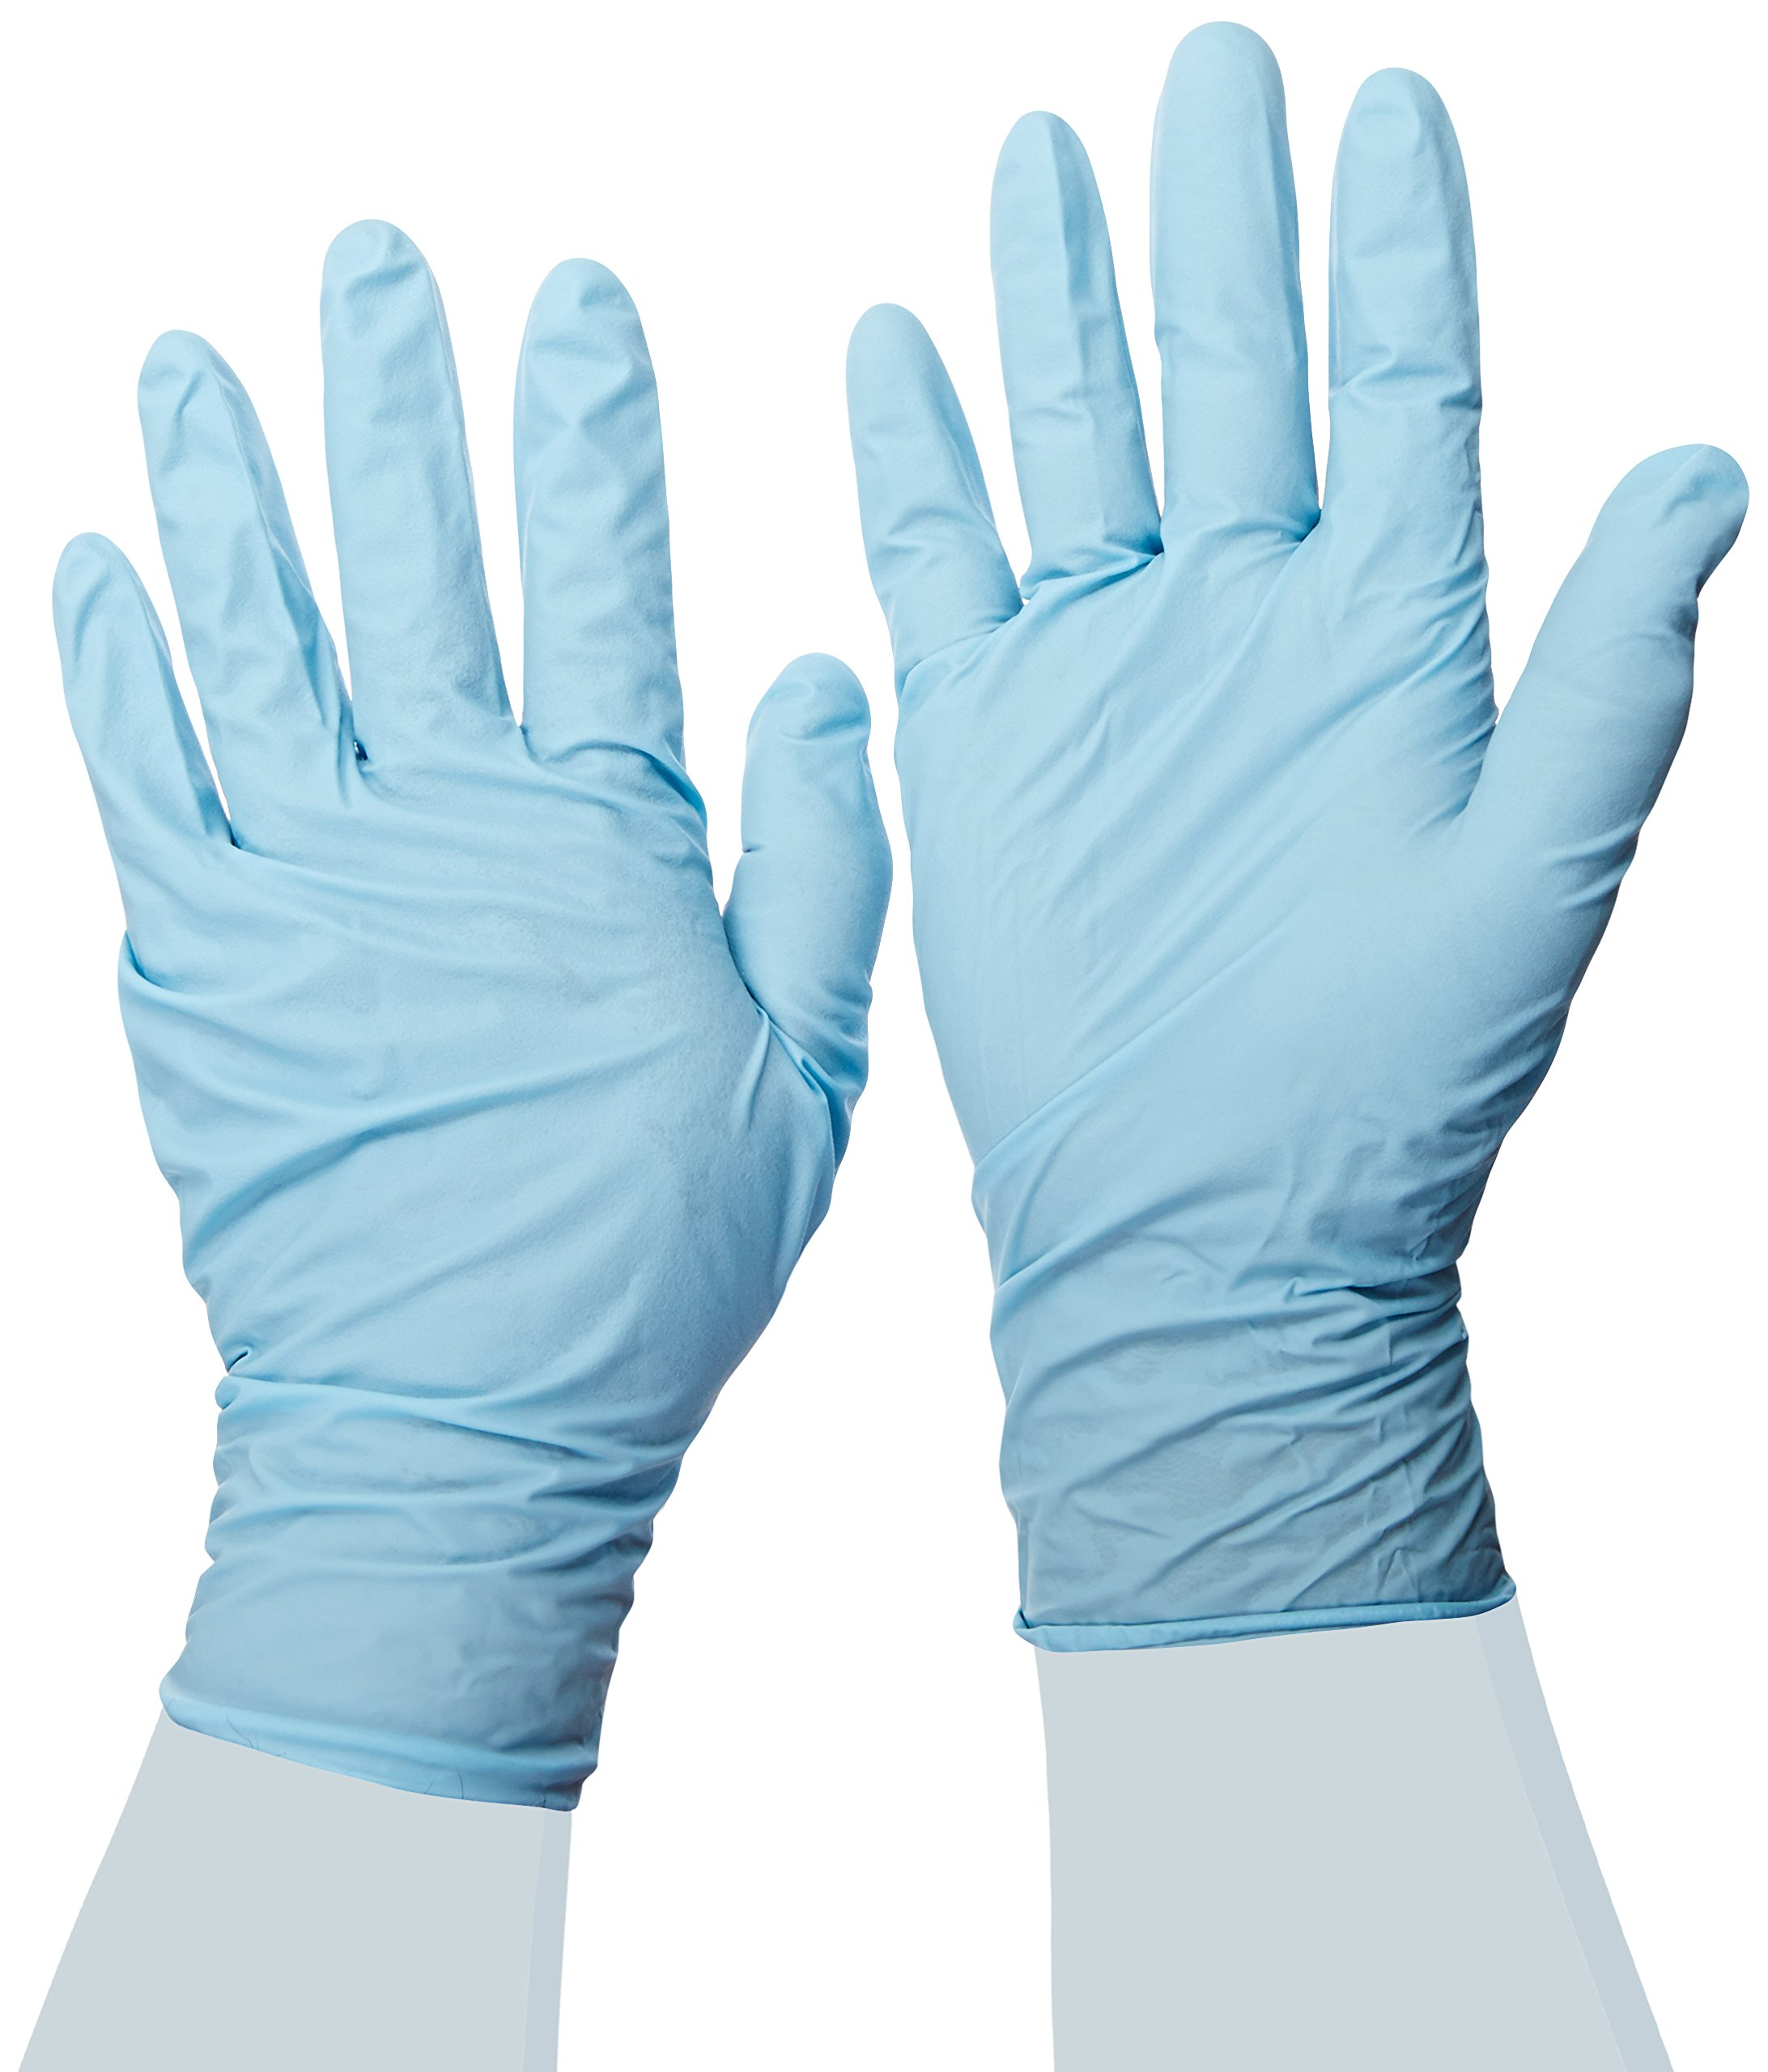 High Five Integra EC N874 Series N87 Nitrile Exam Glove, X-Large (Case of 10)